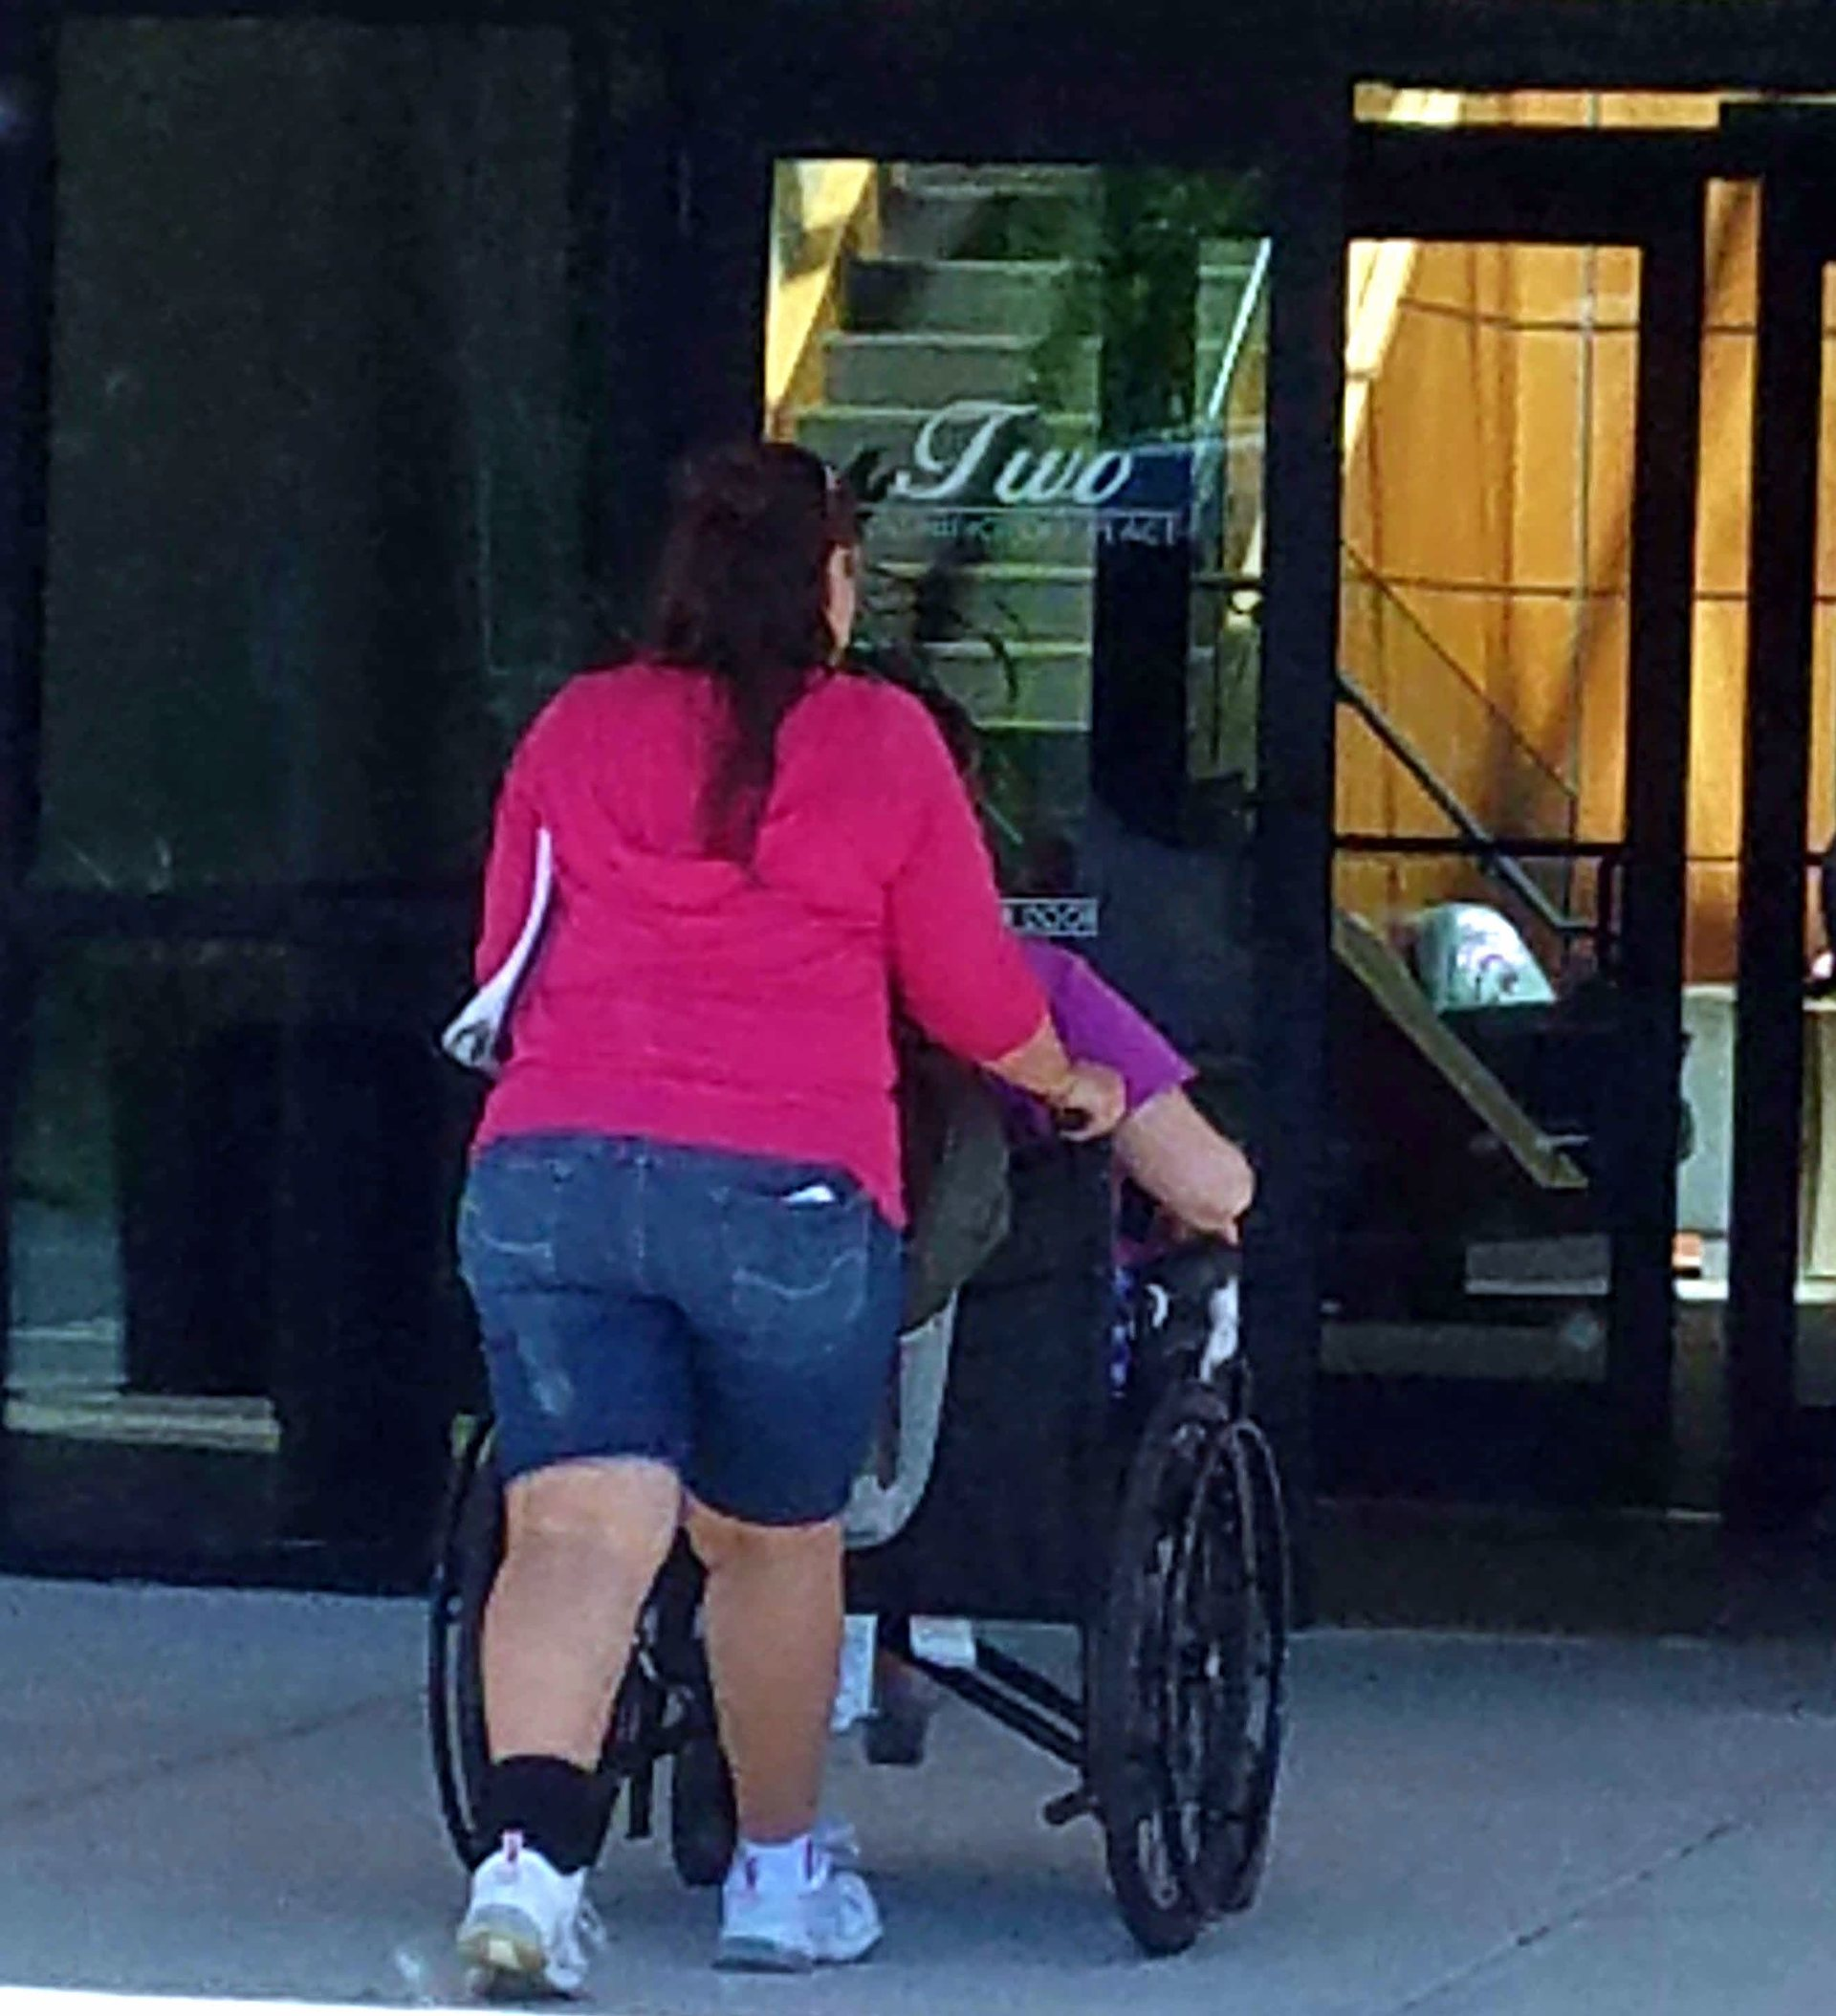 Pushing person in wheelchair into building.